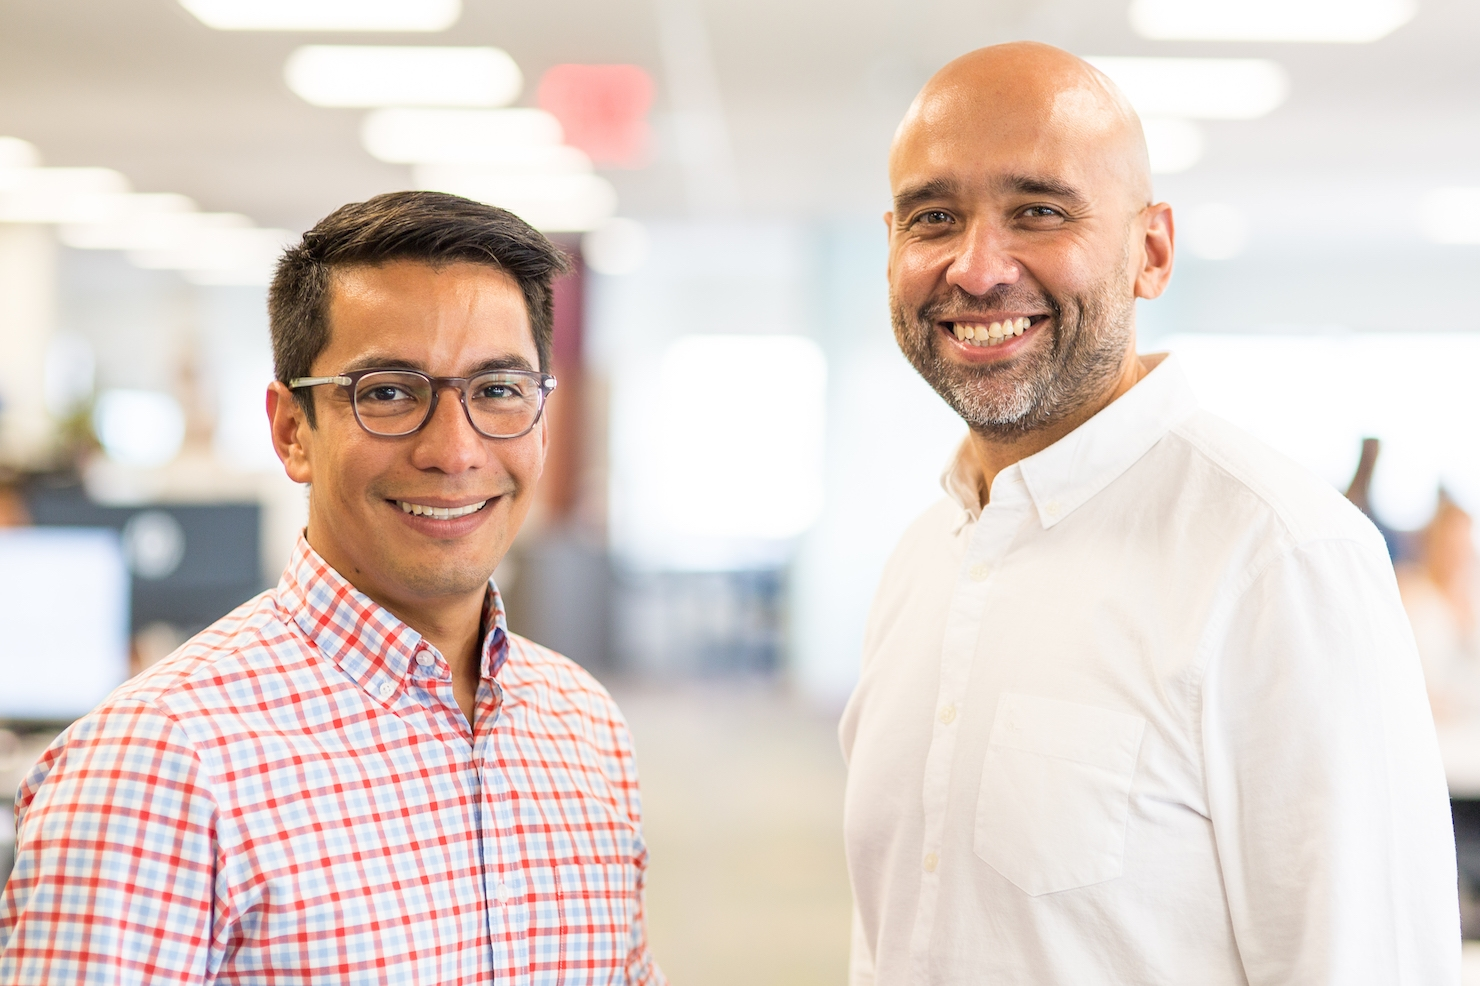 Marketing Chatbot Firm Drift Grabs $60M Led By Sequoia, Sans HubSpot | DeviceDaily.com